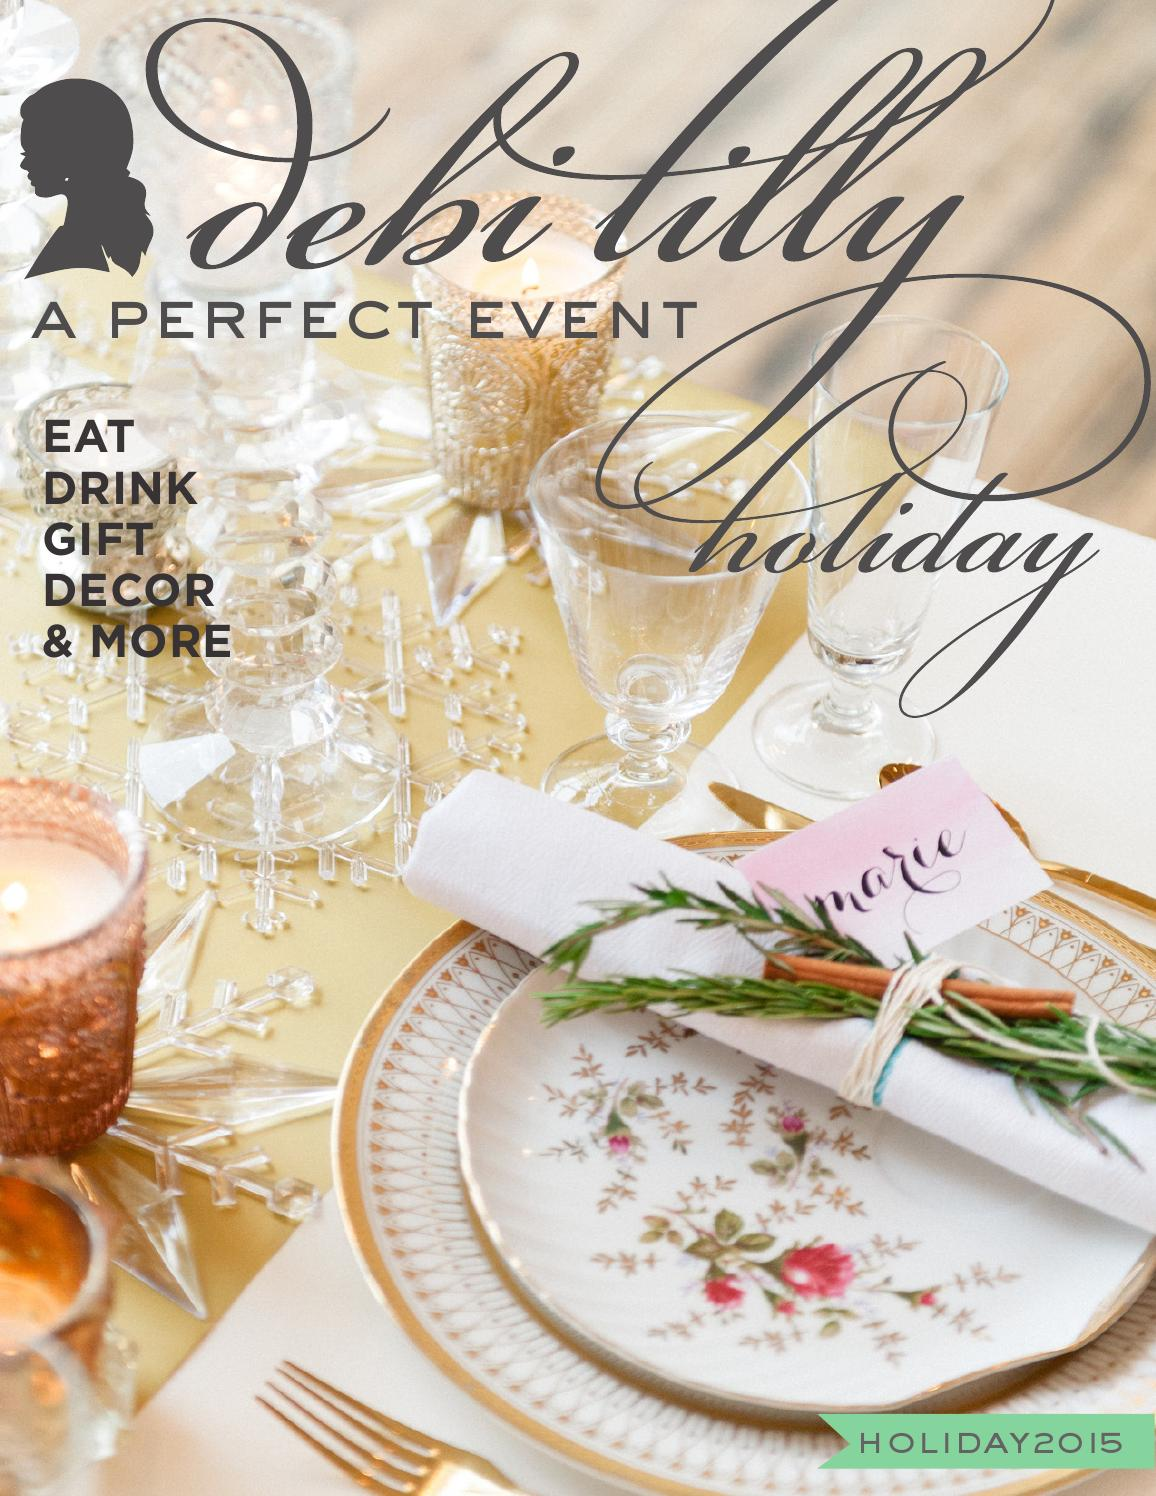 debi lilly a perfect event holiday 2015 by debi lilly style issuu. Black Bedroom Furniture Sets. Home Design Ideas